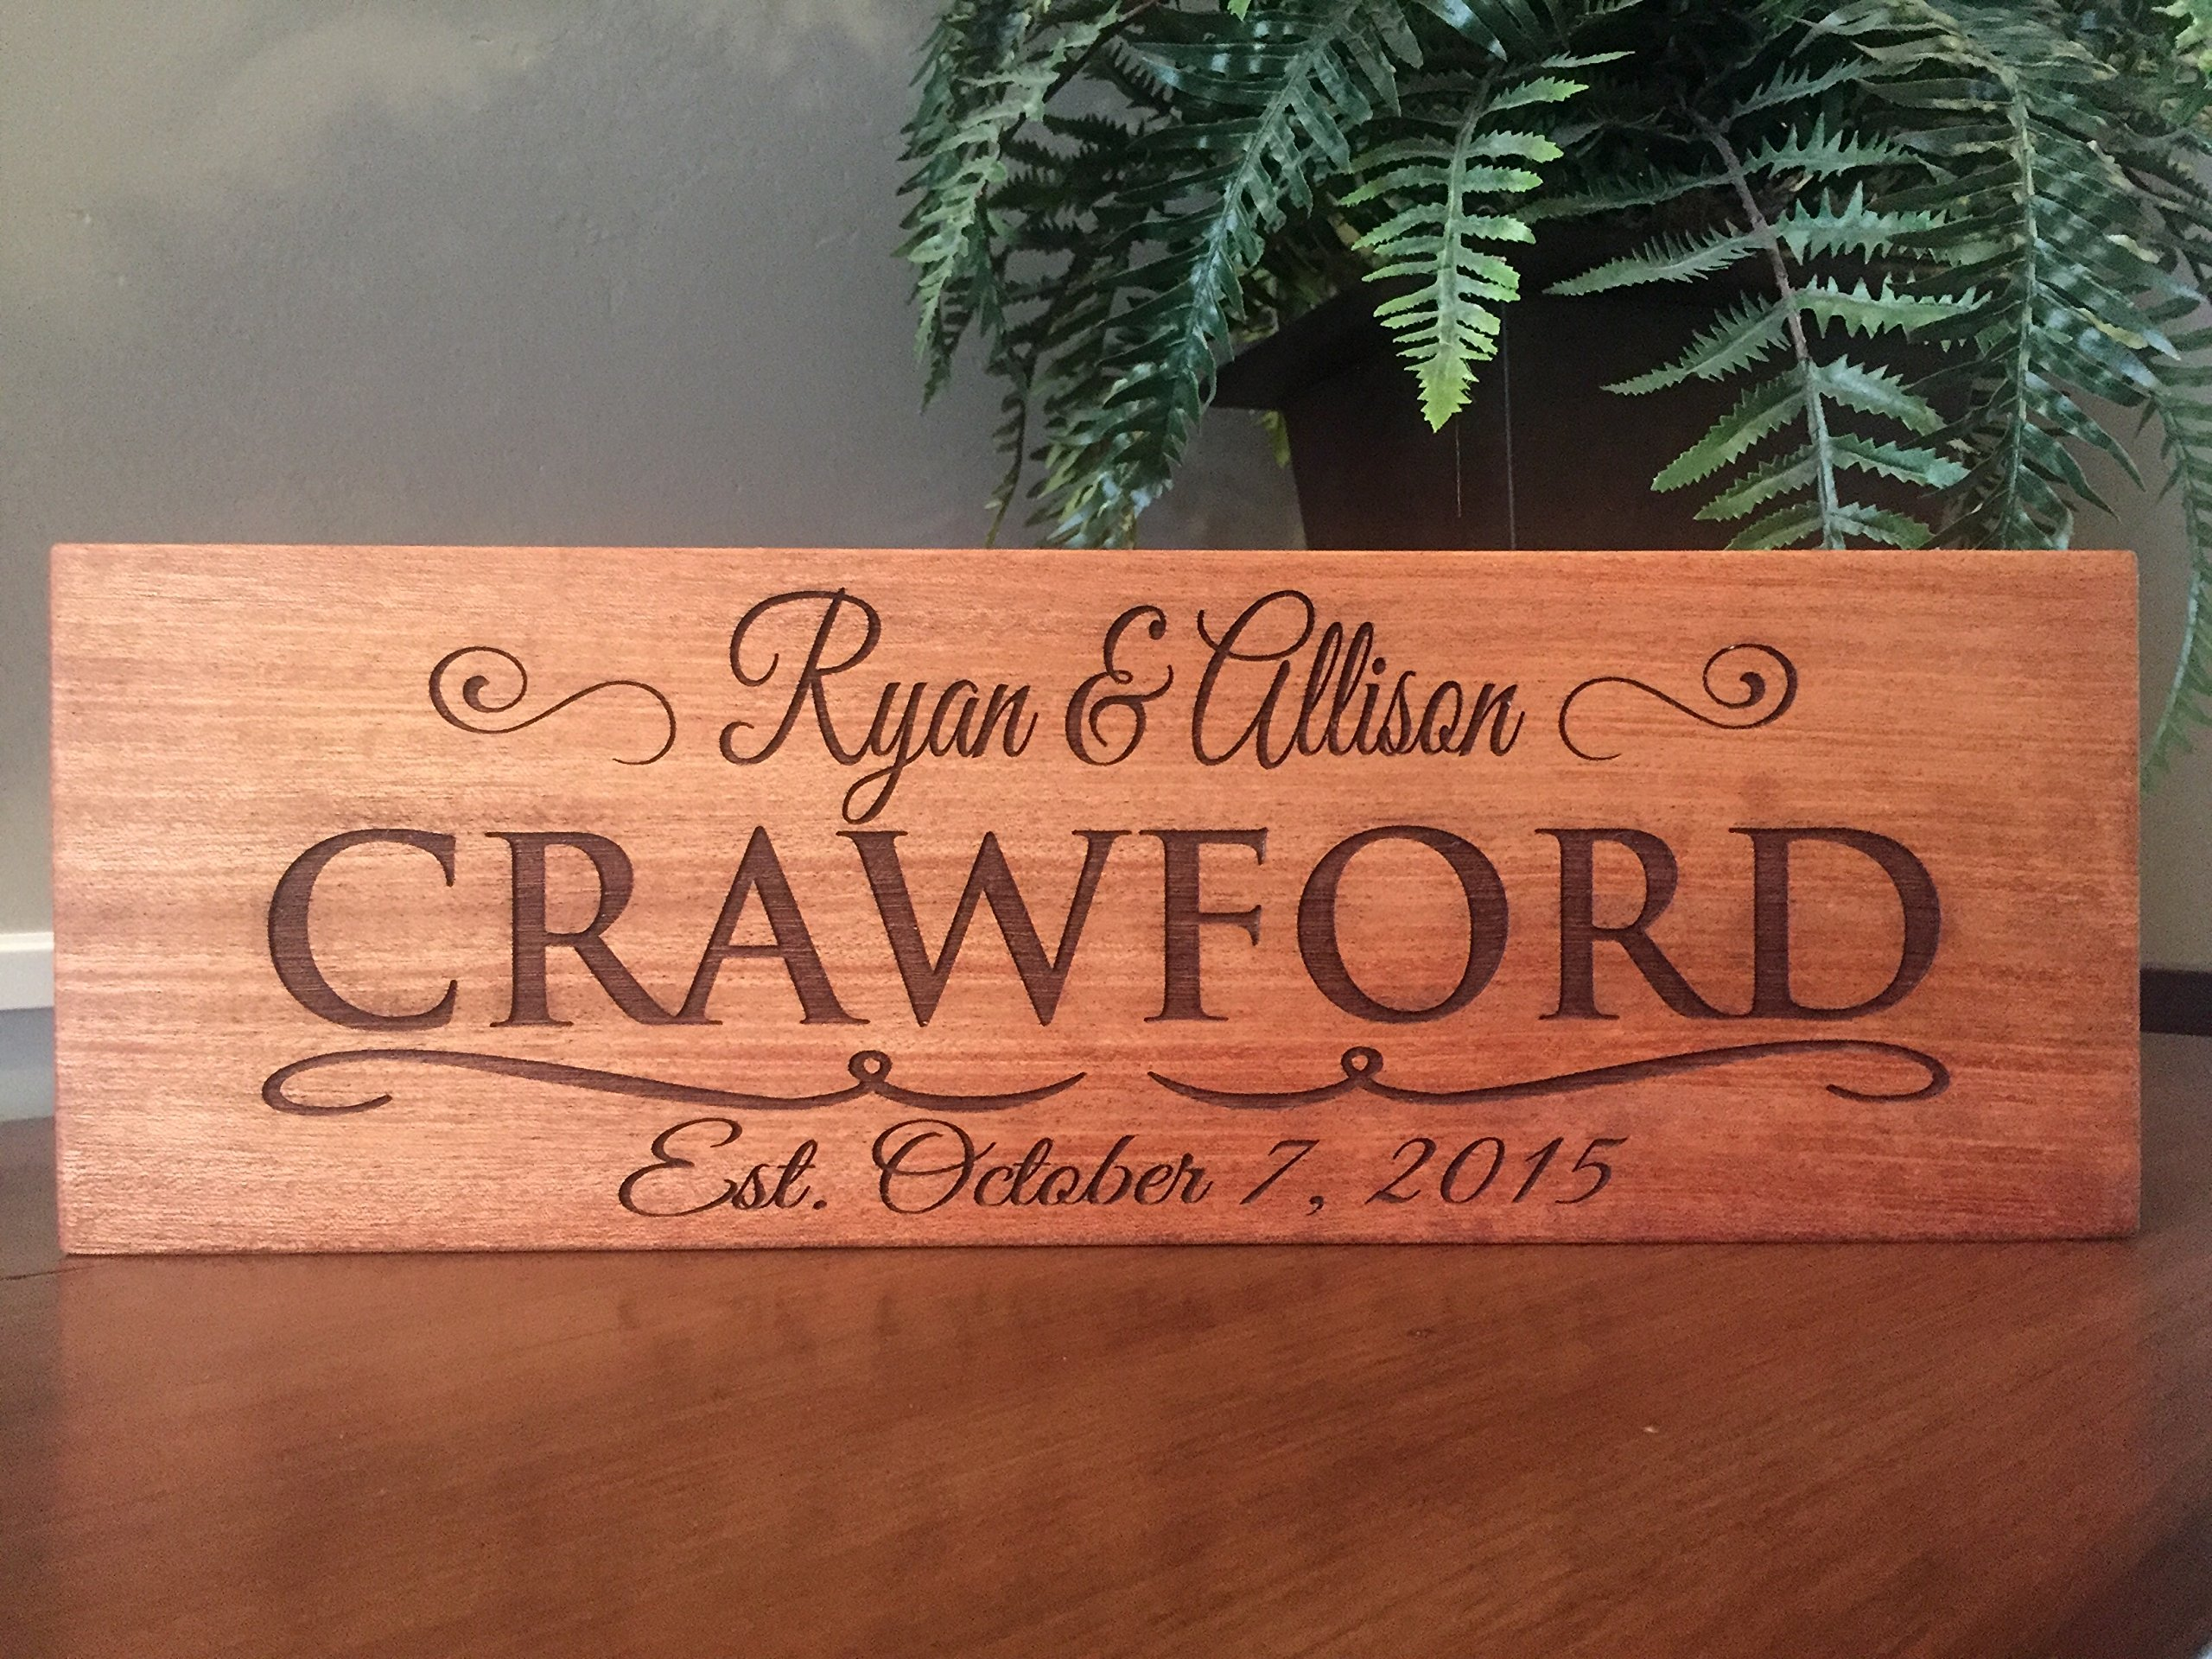 Qualtry Wedding Gifts for The Couple - Personalized Engraved Wedding Gifts Wooden Family Name Signs 5x15 (Mahogany Wood, Crawford Design)